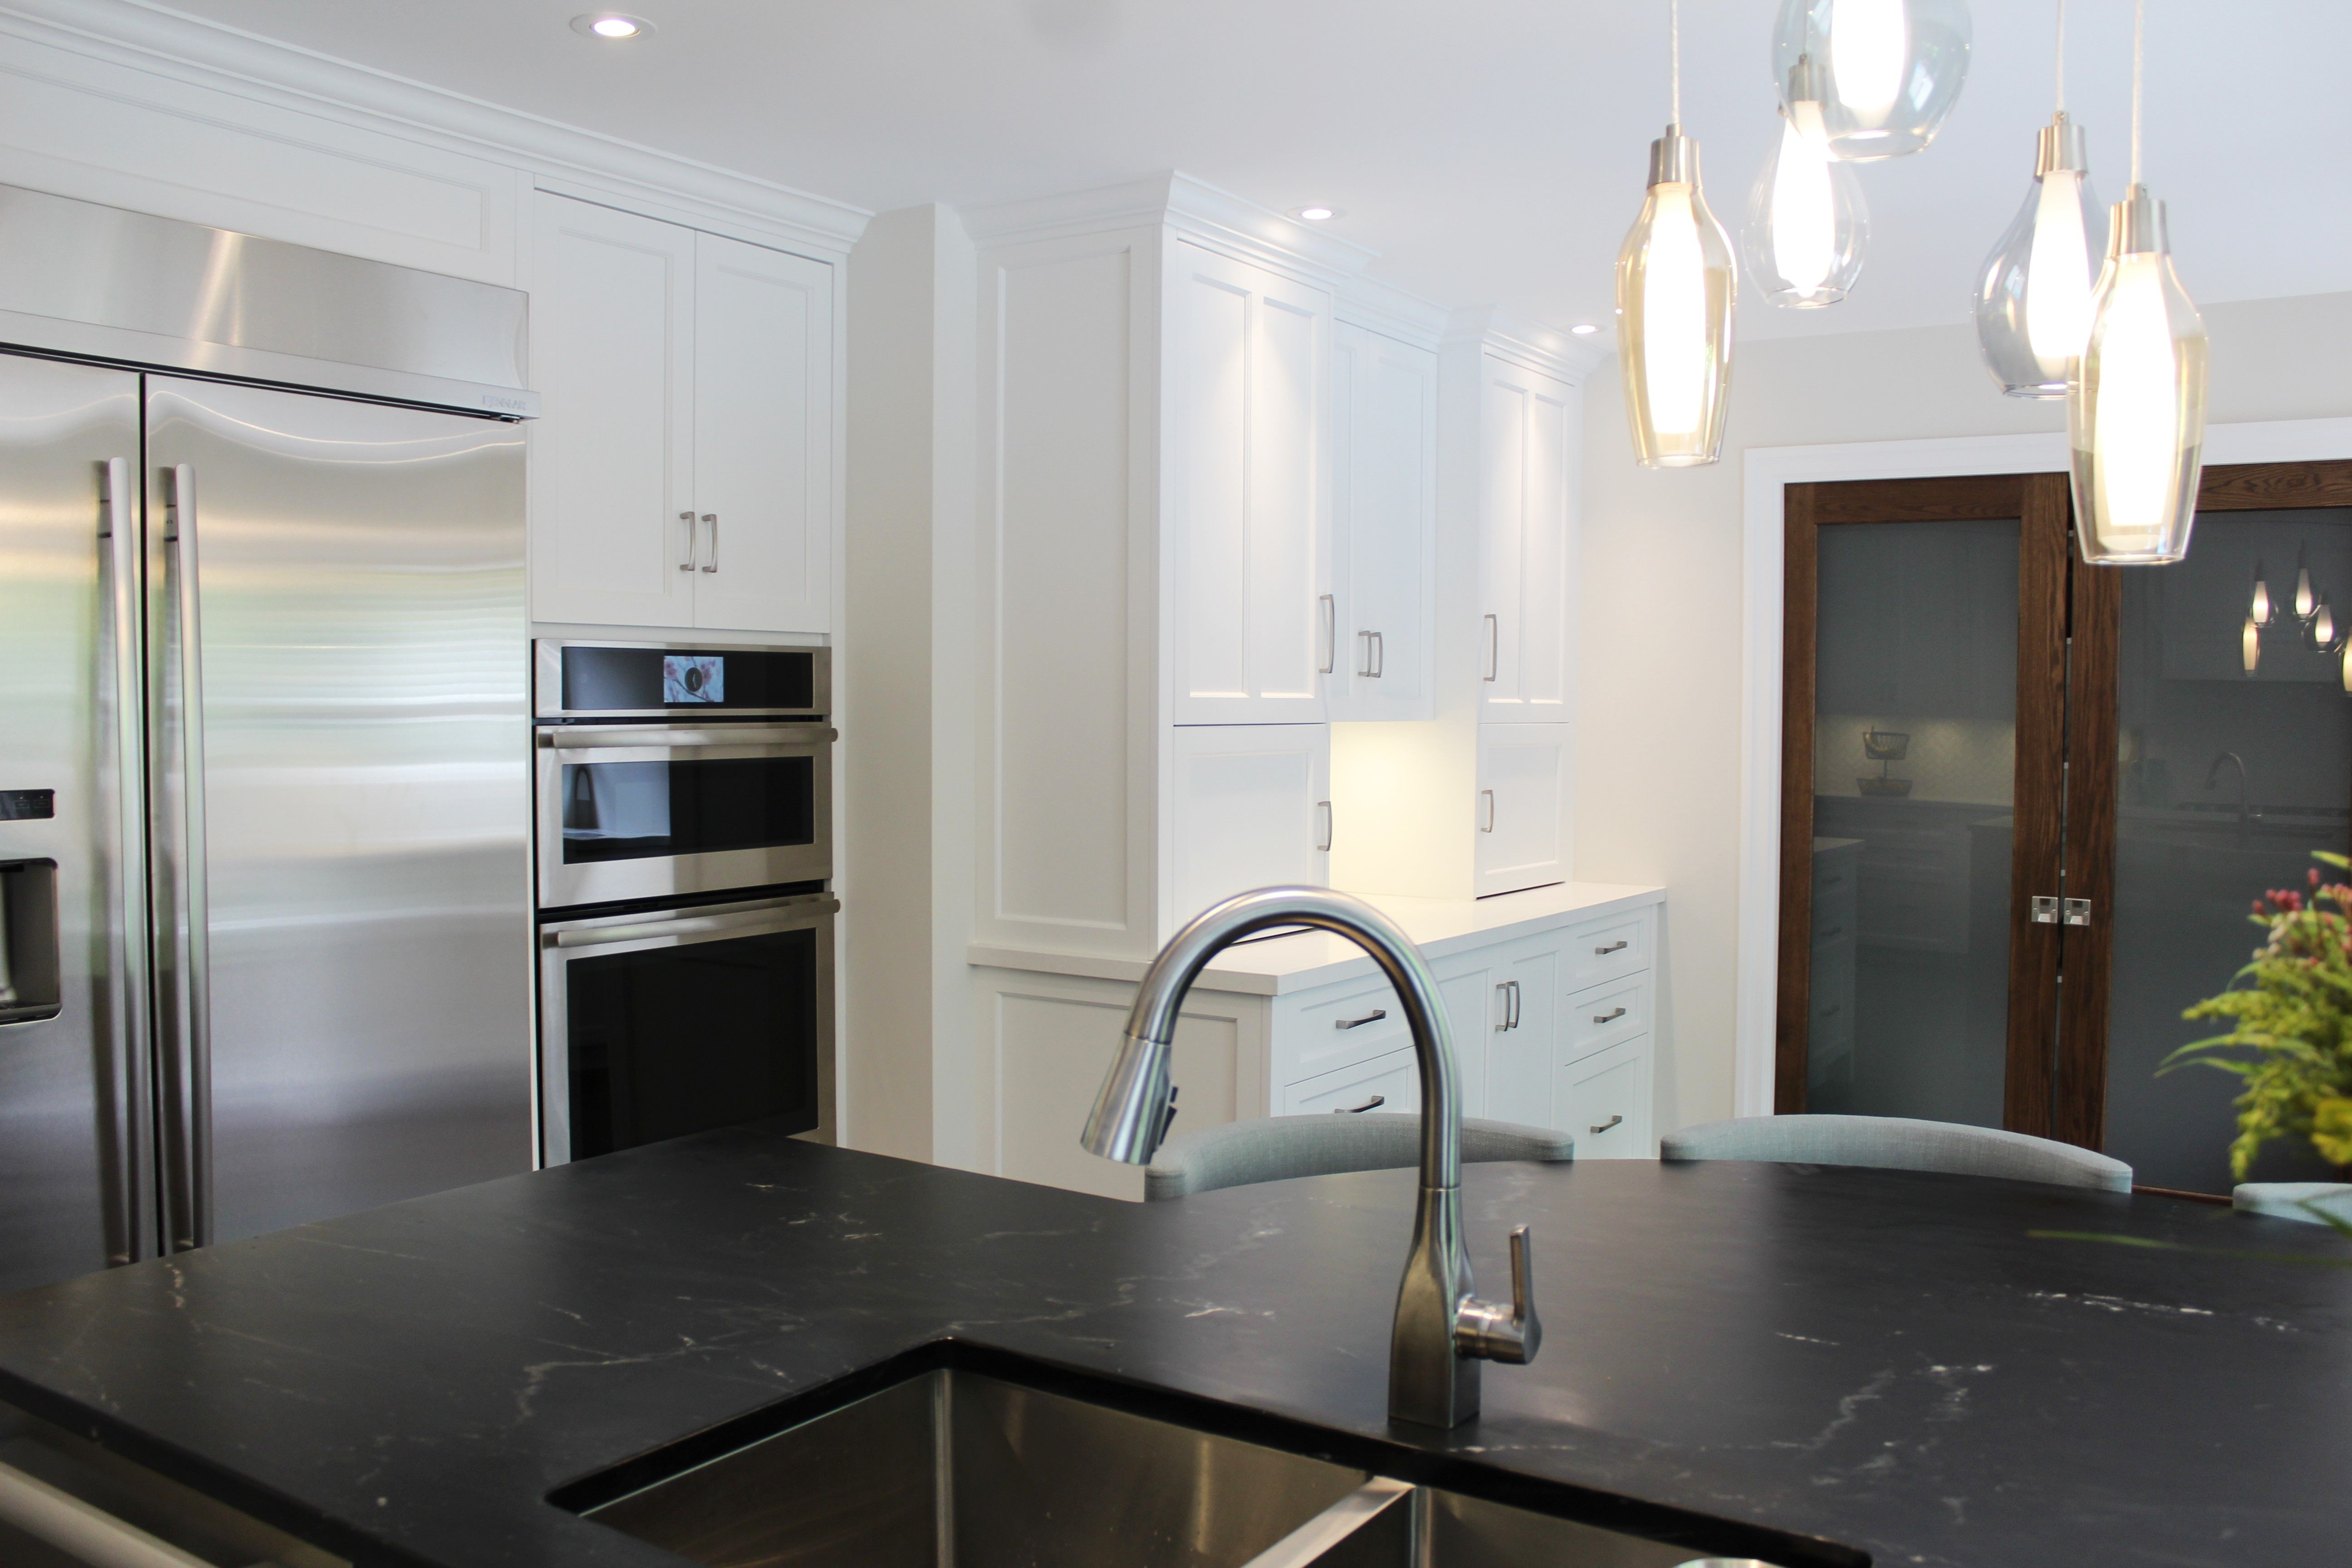 These Customcabinets Shine Bright In Chantilly Lace We Love The Contrast Between The Dark Soapstone Co Custom Kitchen Ceasarstone Countertops Luxury Interior